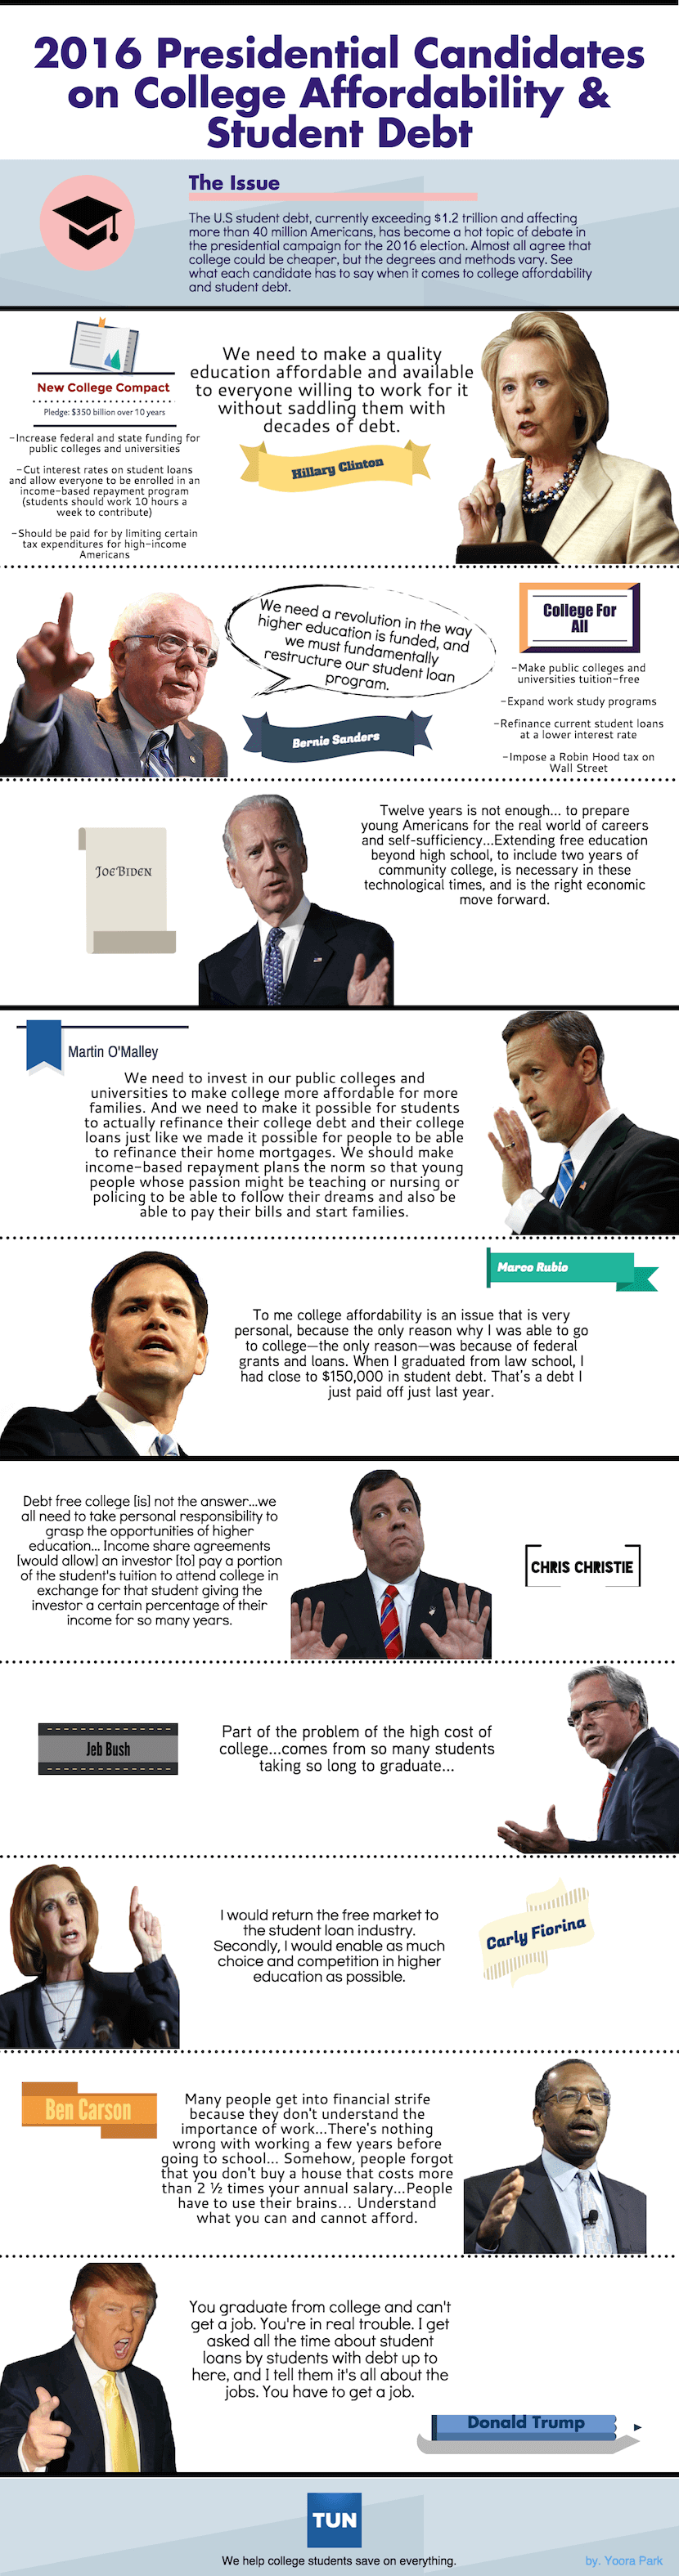 presidential-candidates-on-college-affordability